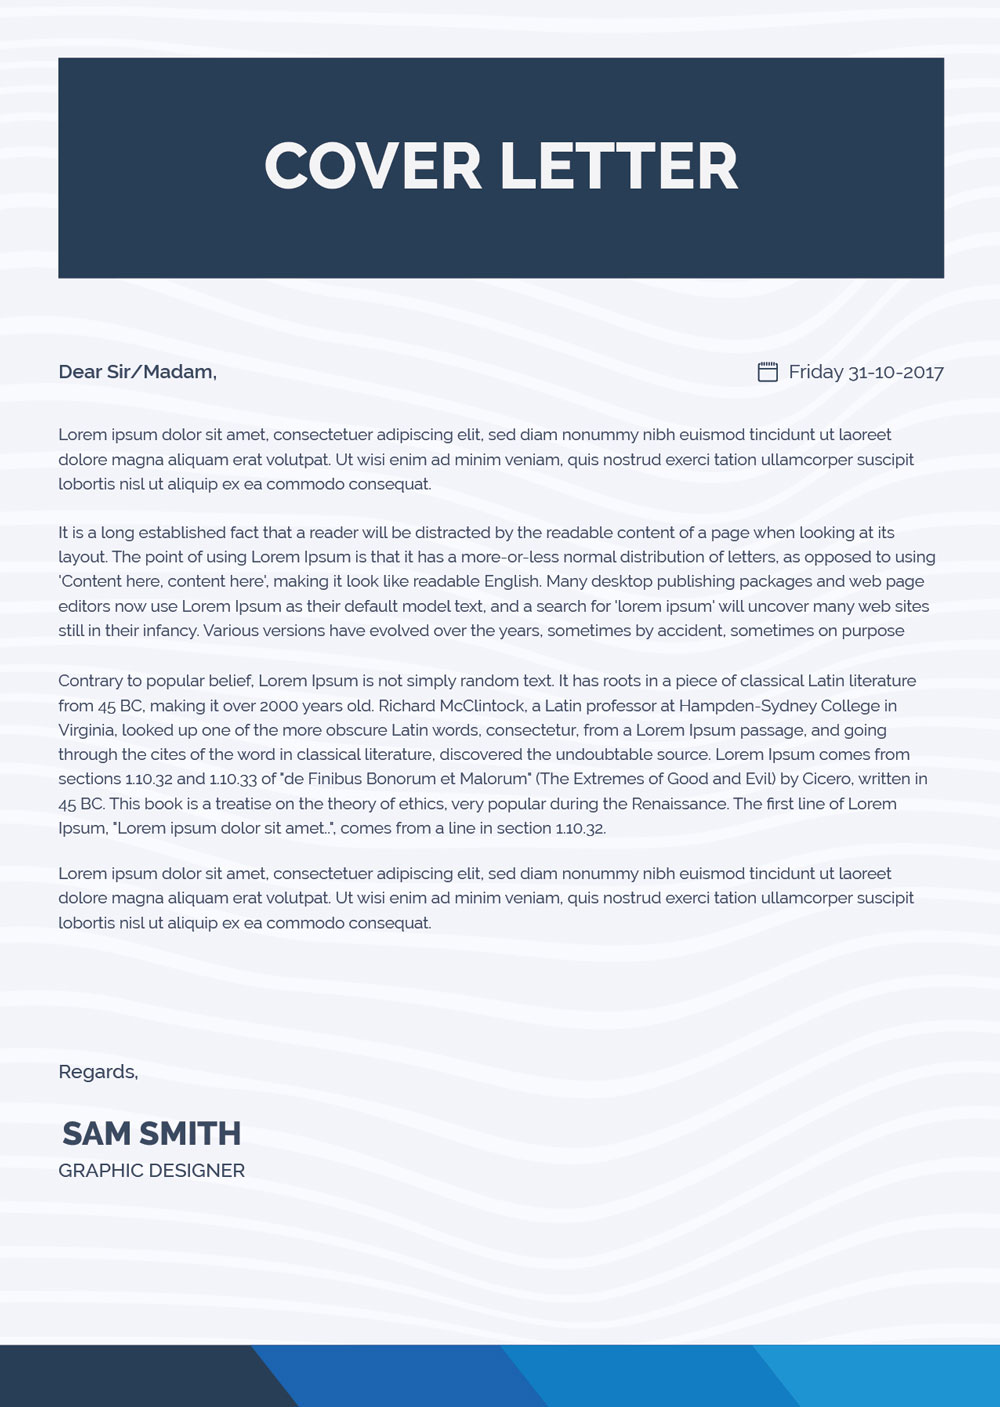 Free-Ai-Resume-Cover-Letter-for-Civil-Engineer